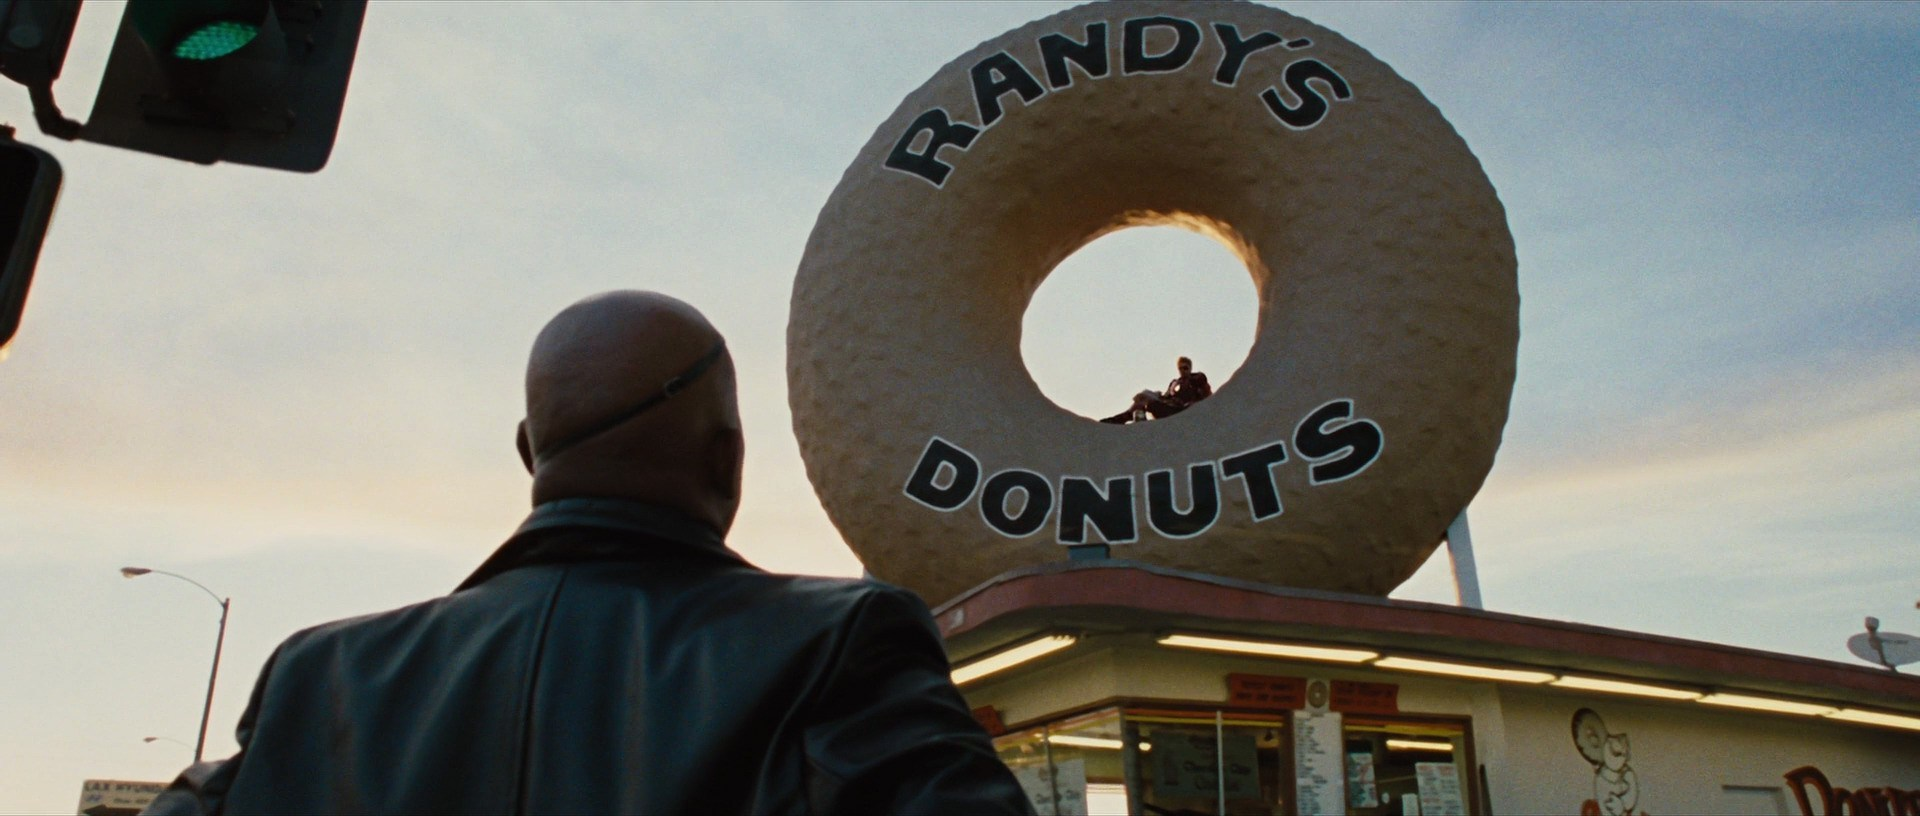 Iron Man 2 Filming Locations | Randy's Donuts